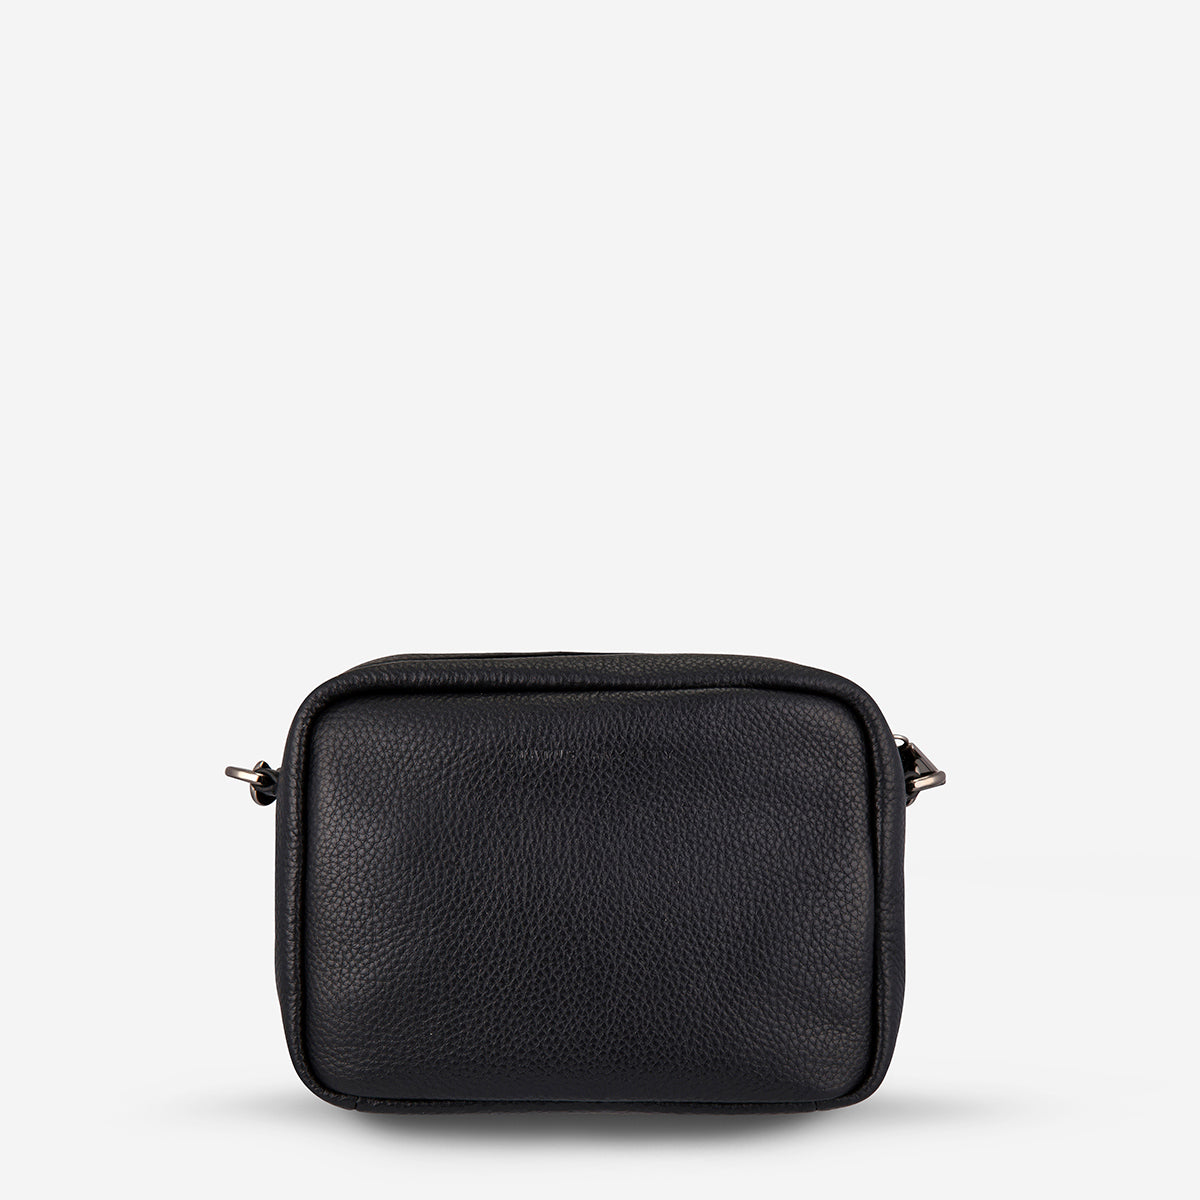 Status Anxiety Cult Crossbody Bag - Black